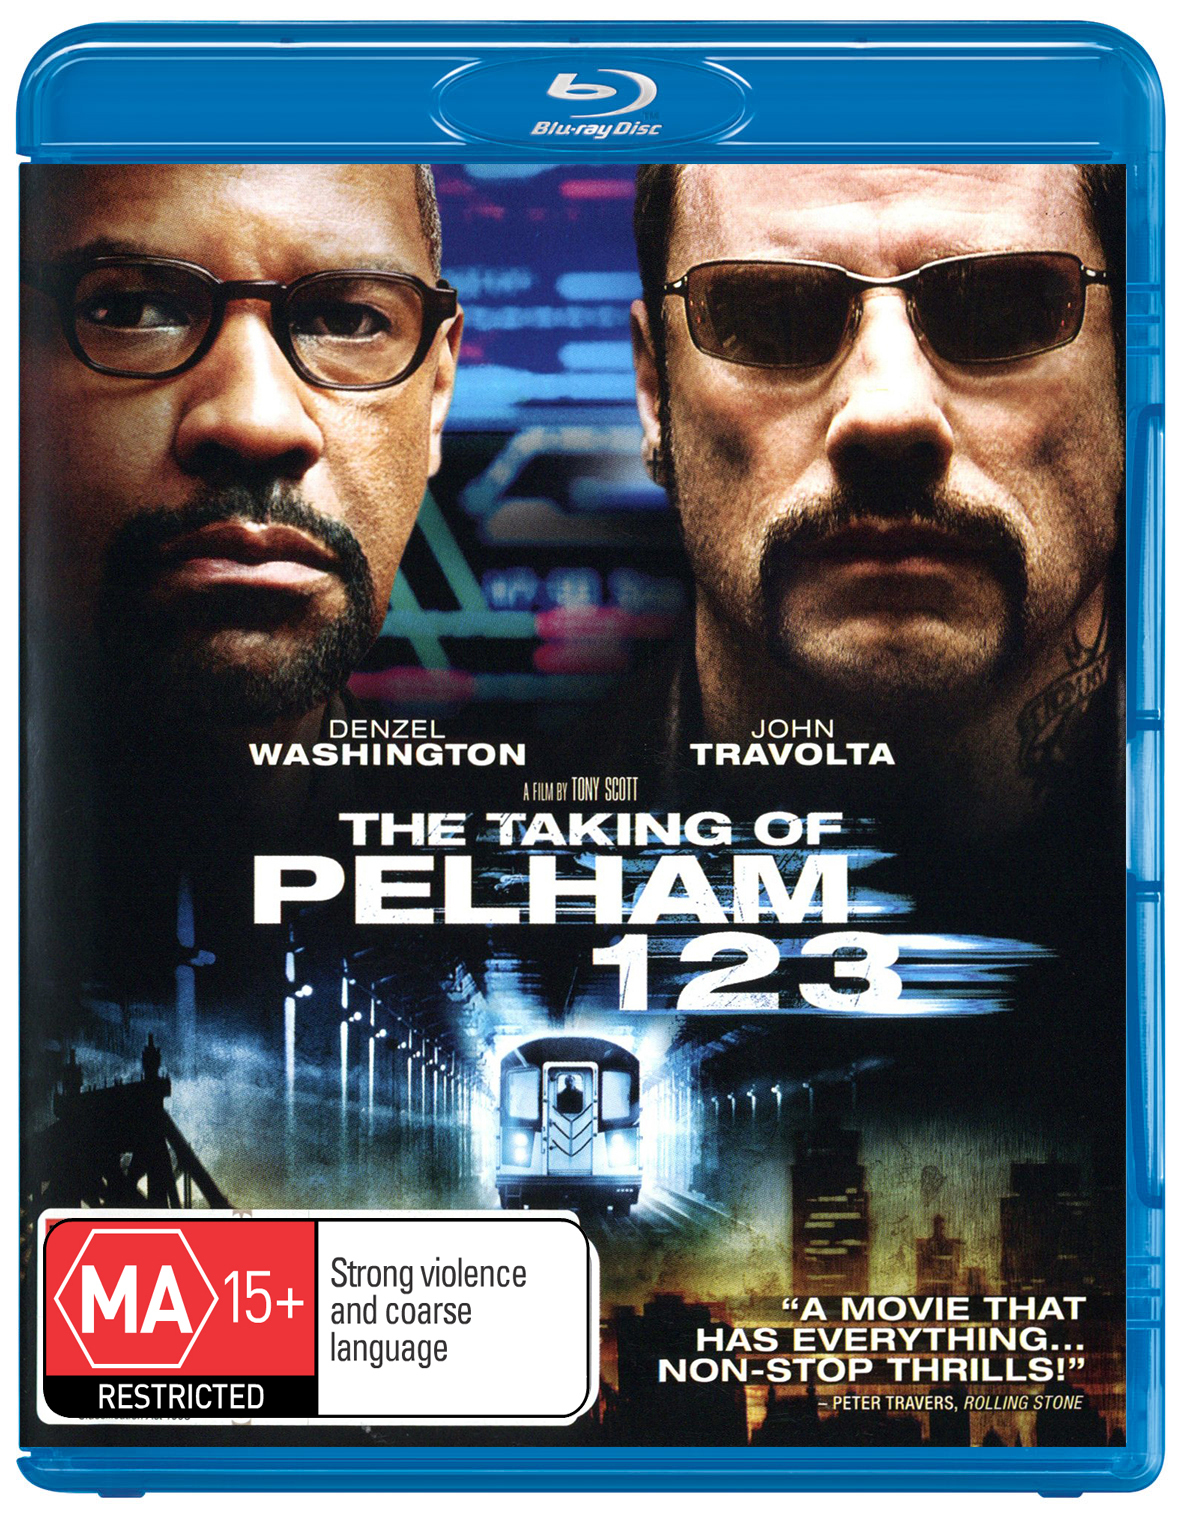 The Taking of Pelham 123 on Blu-ray image